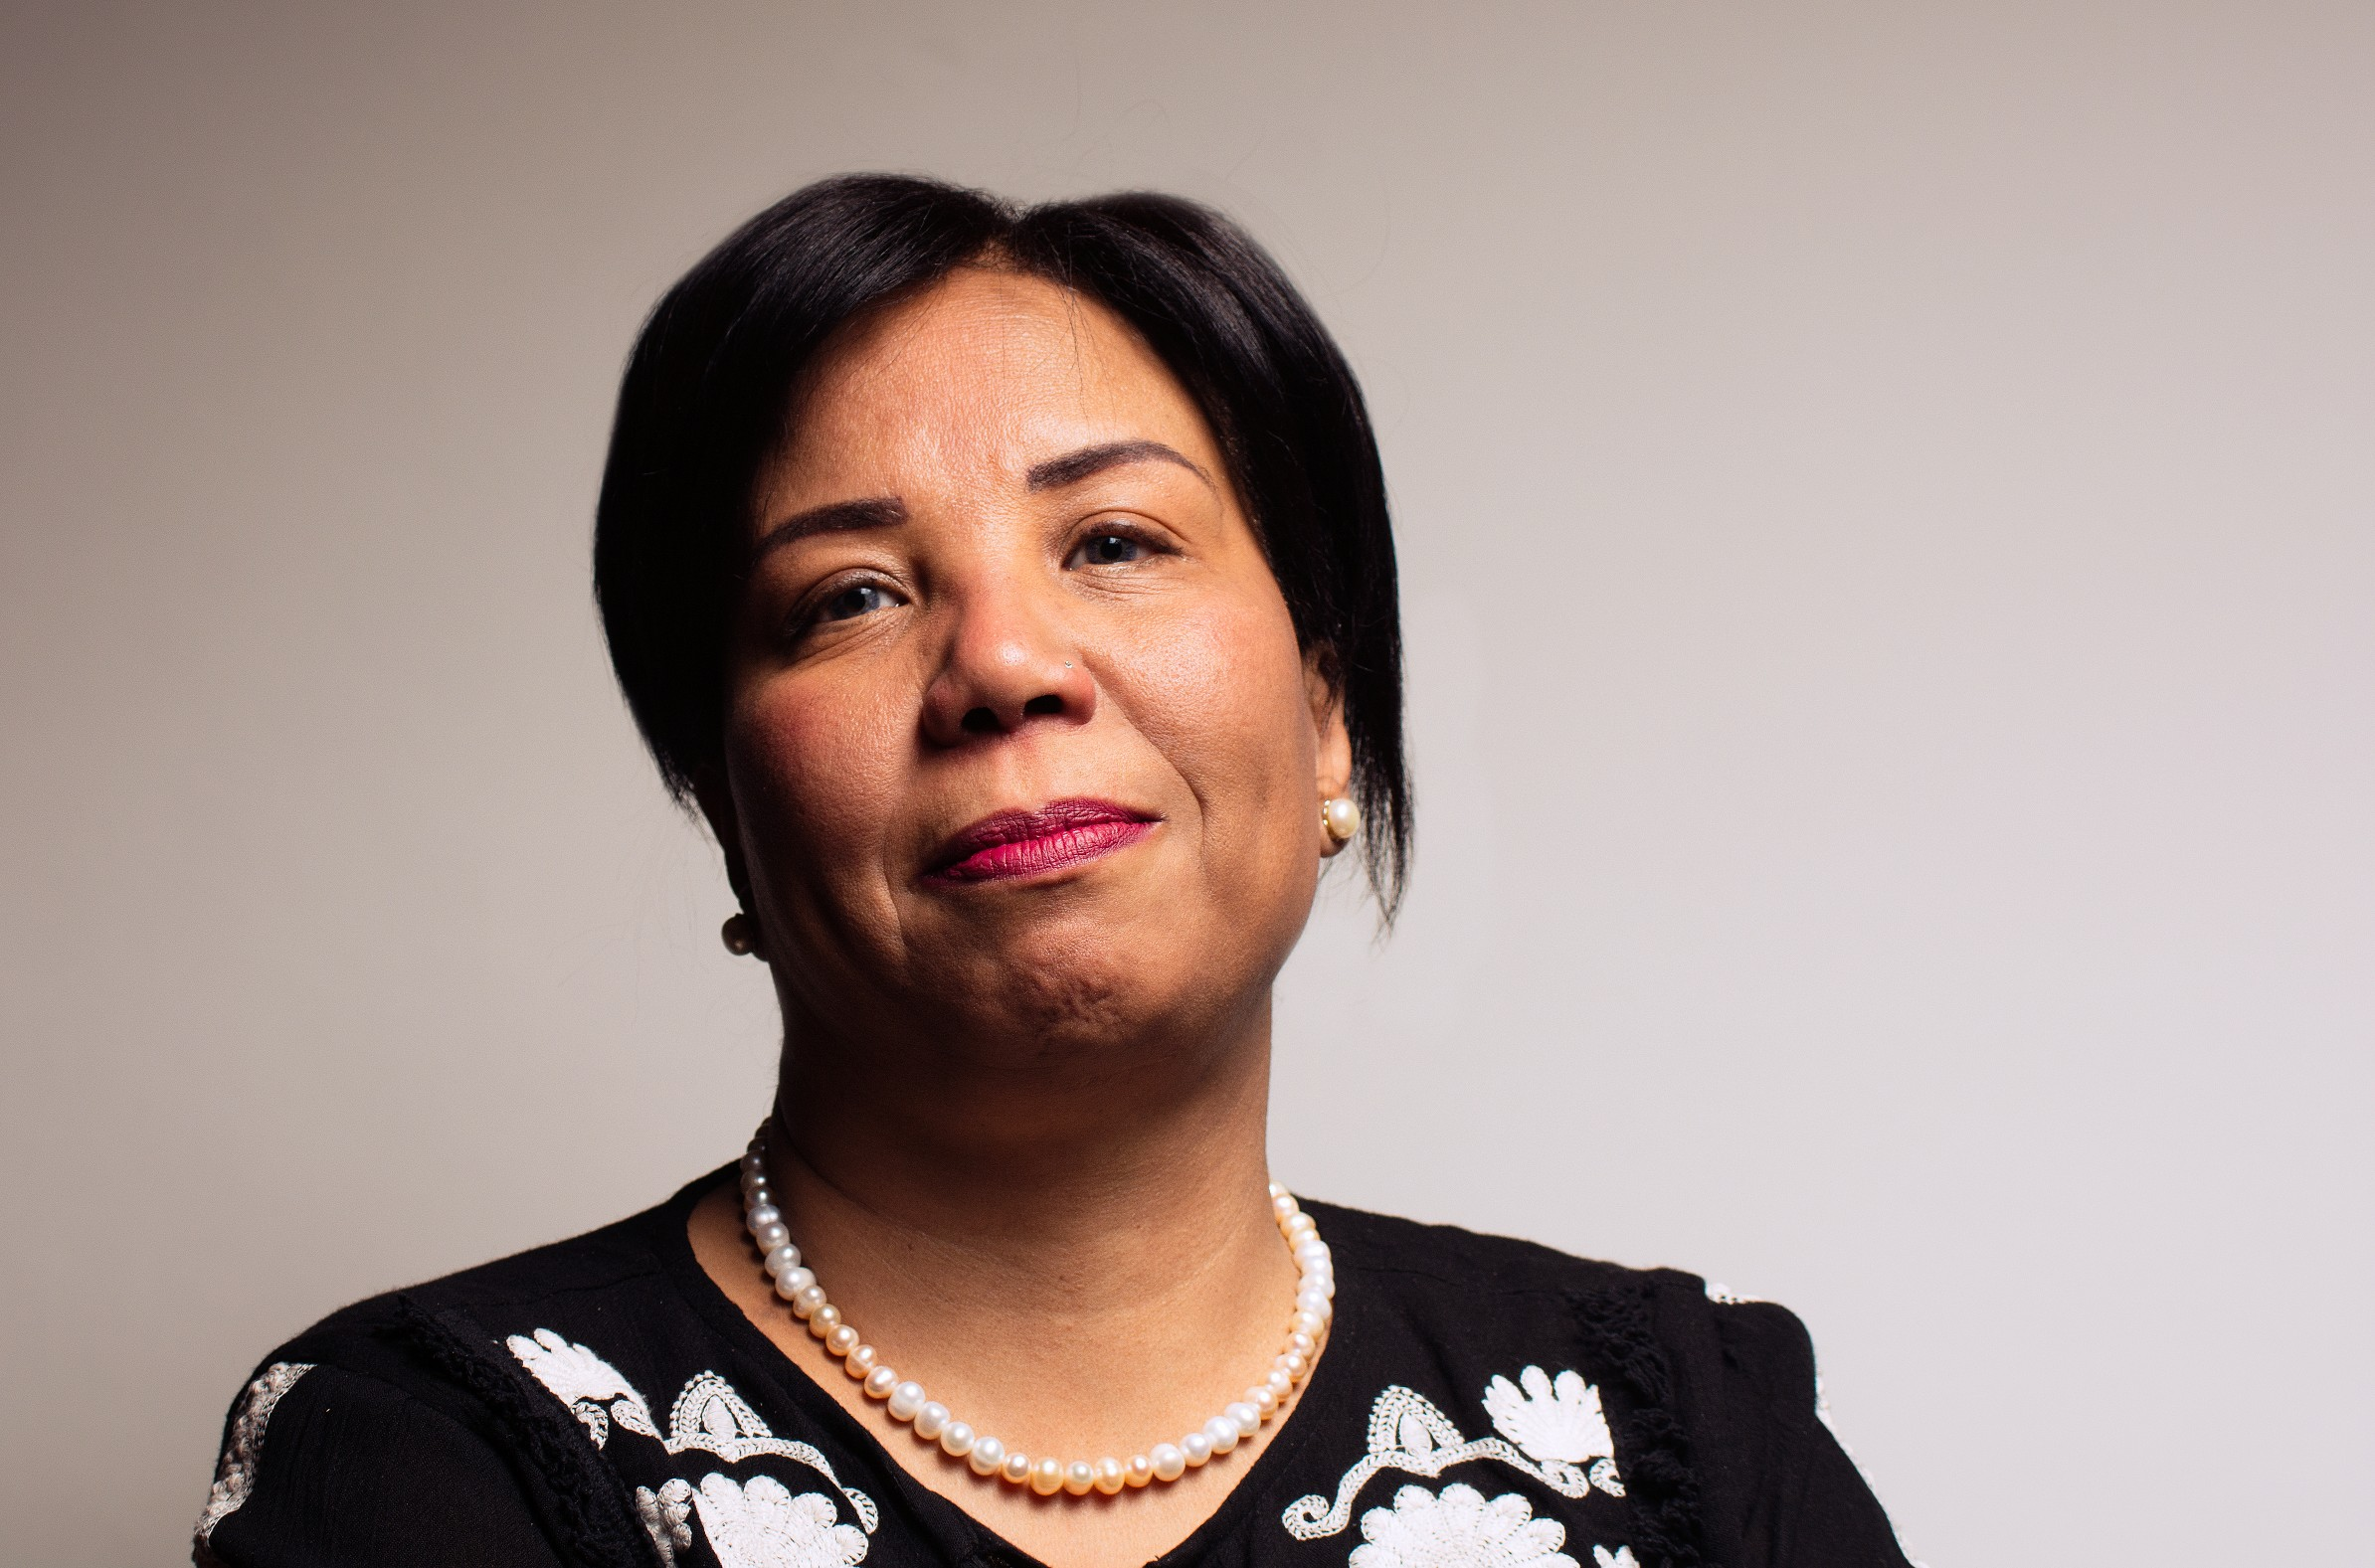 Azza Soliman is part of Amnesty International's Brave Campaign, which calls for the recognition and protection of human rights defenders around the world.